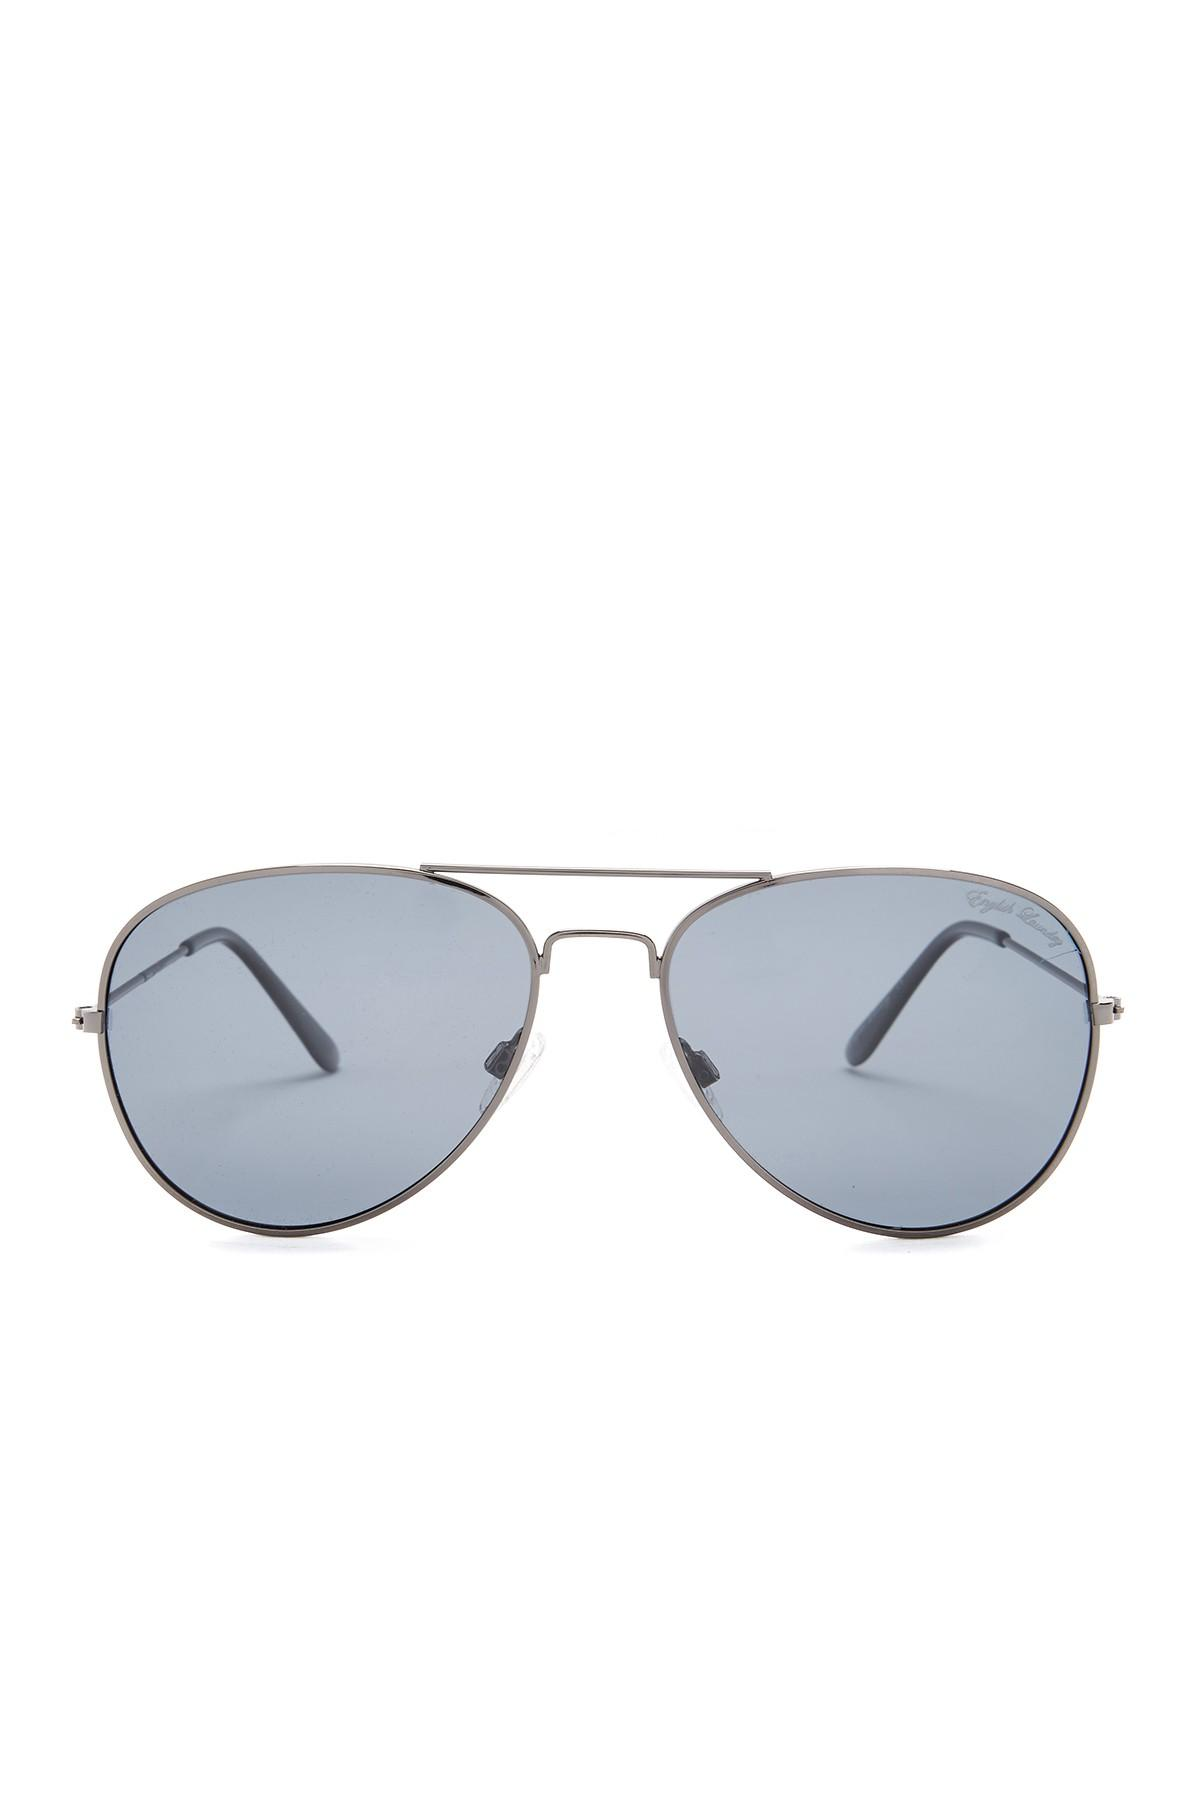 d7c2529156ba Gallery. Previously sold at: Nordstrom Rack · Men's Brown Sunglasses ...